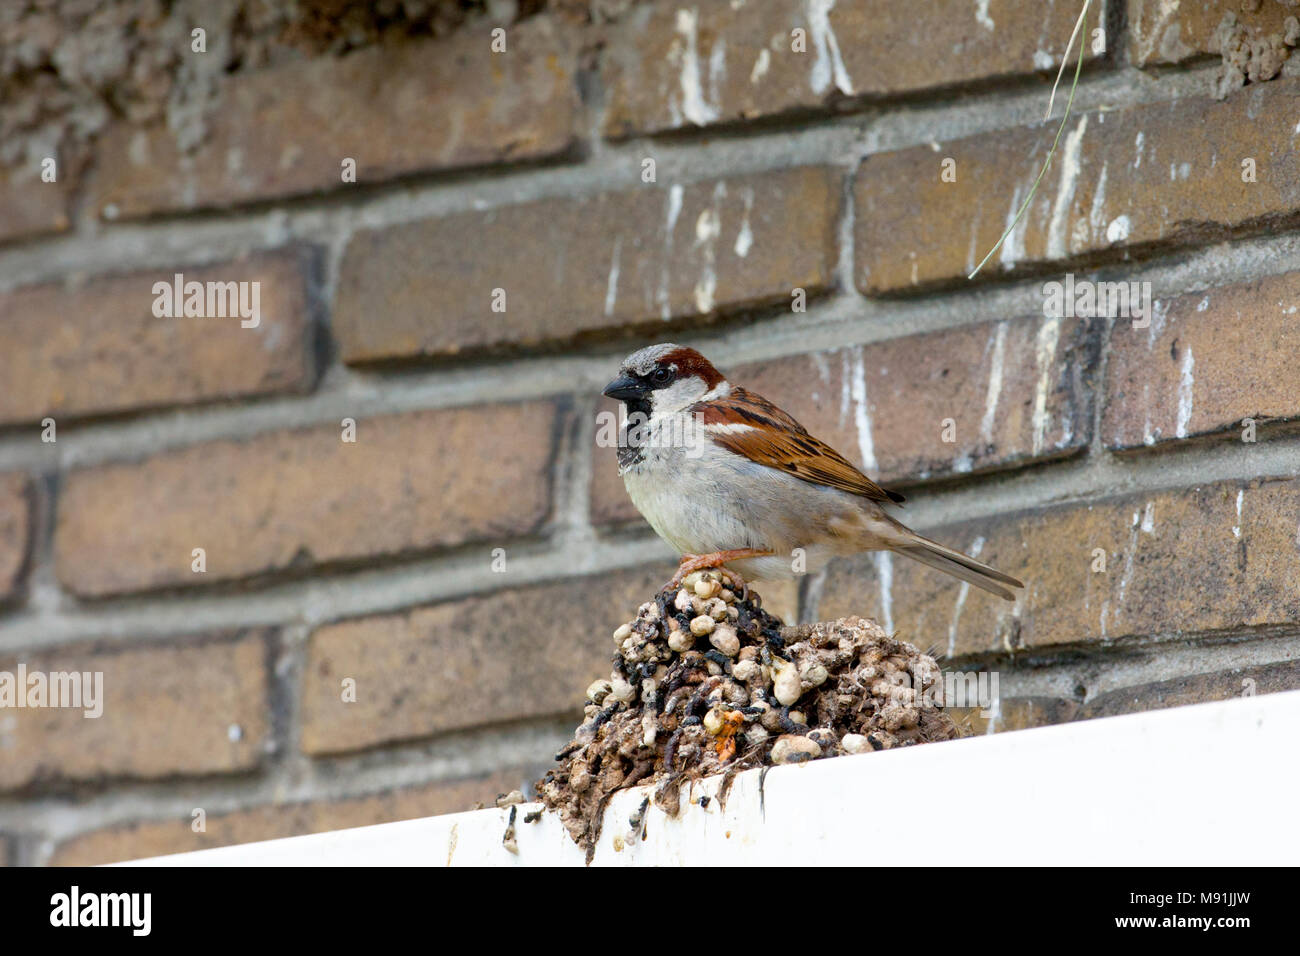 Mannetje Huismus op een berg huiszwaluwen poep, Male House Sparrow perched on bird droppings - Stock Image